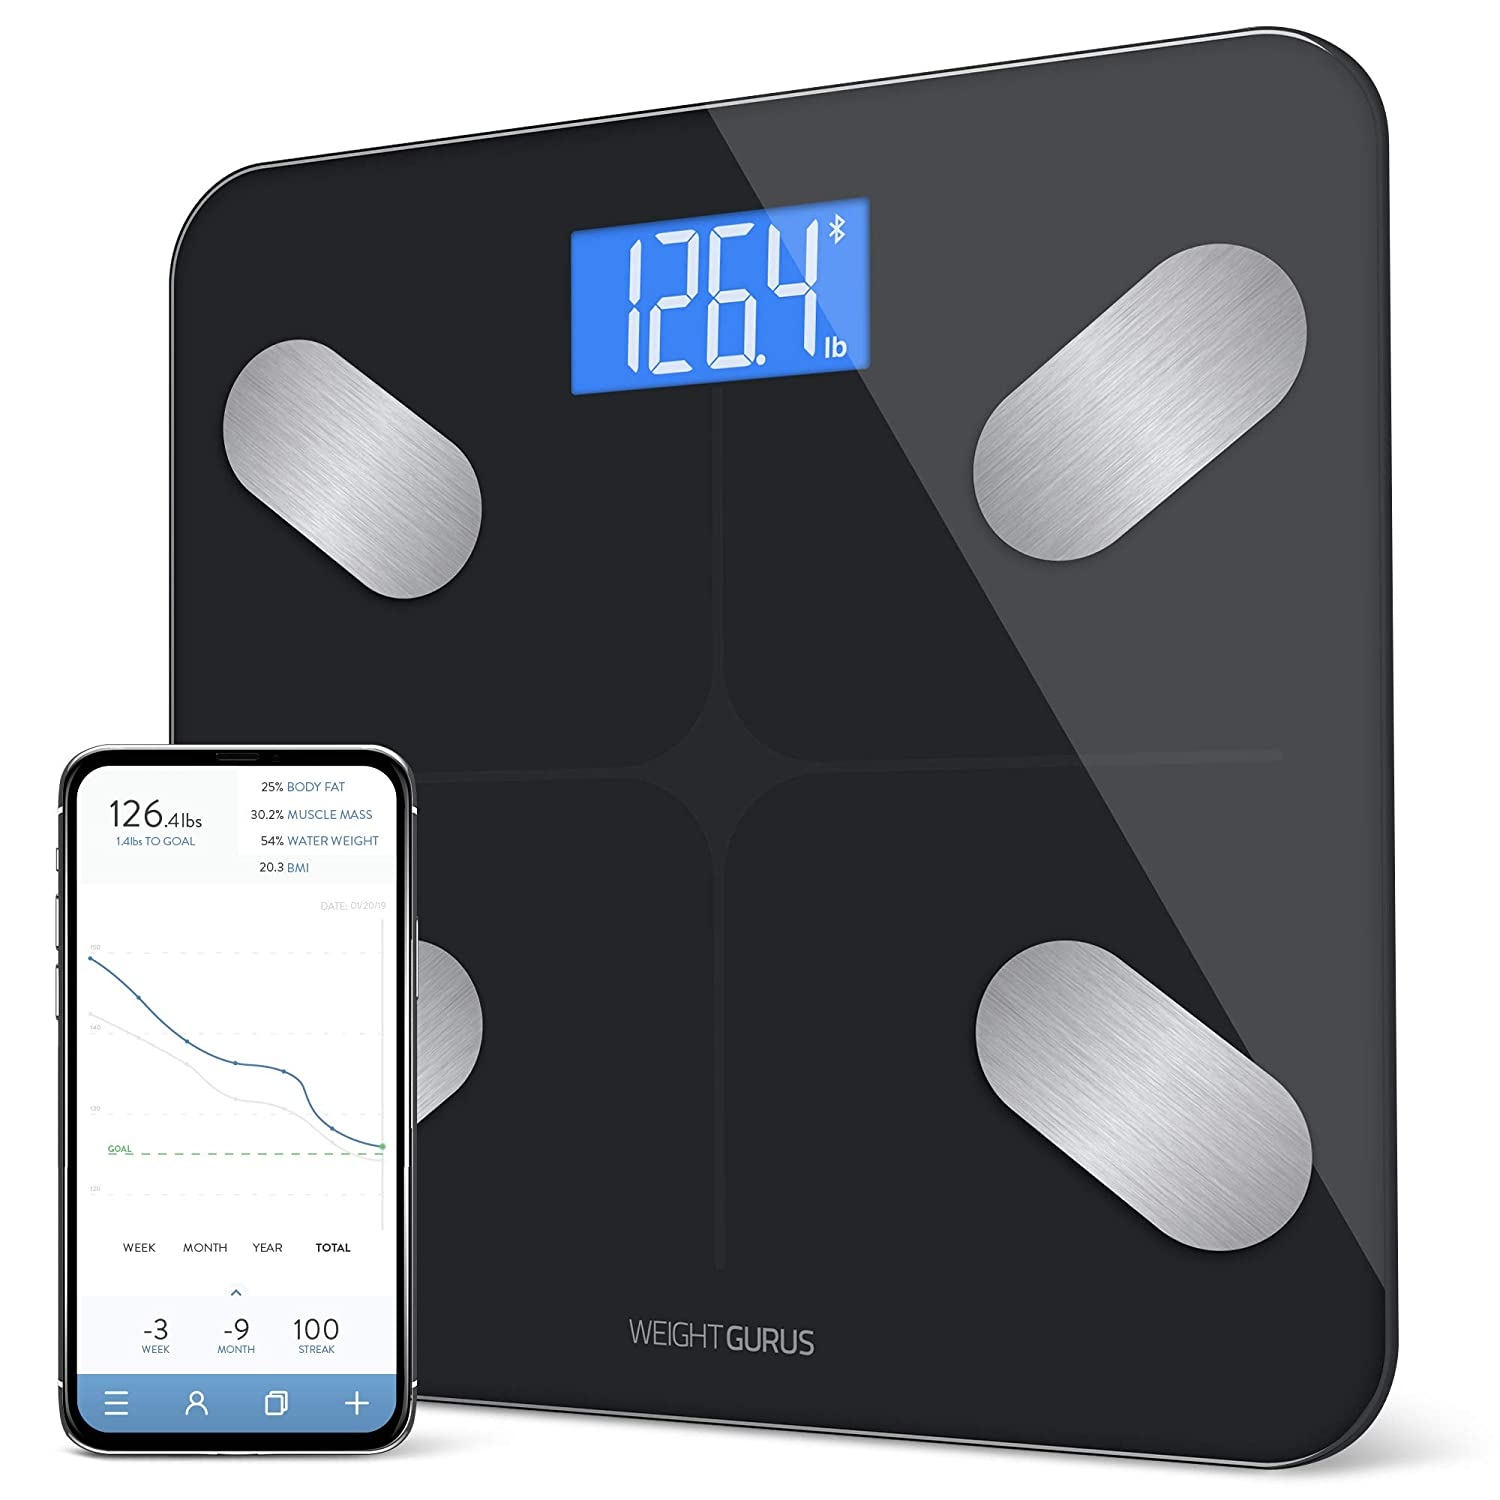 Bluetooth Digital Body Fat Scale from GreaterGoods,